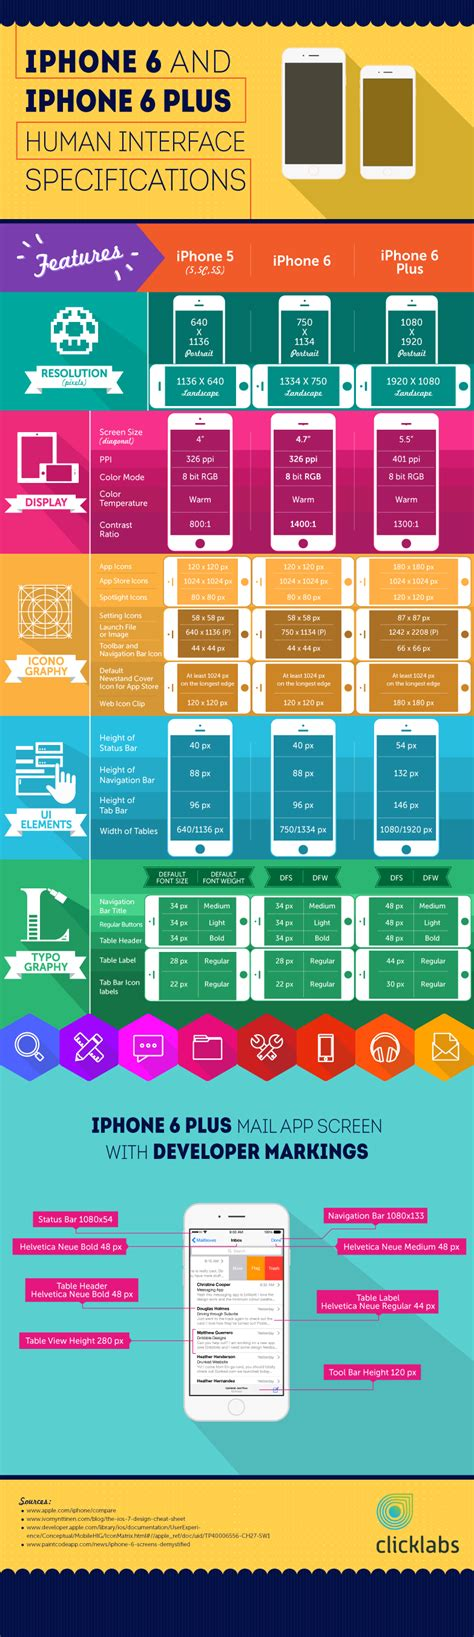 Design App Cheats by Iphone 6 Template Sheet Infographic Click Labs